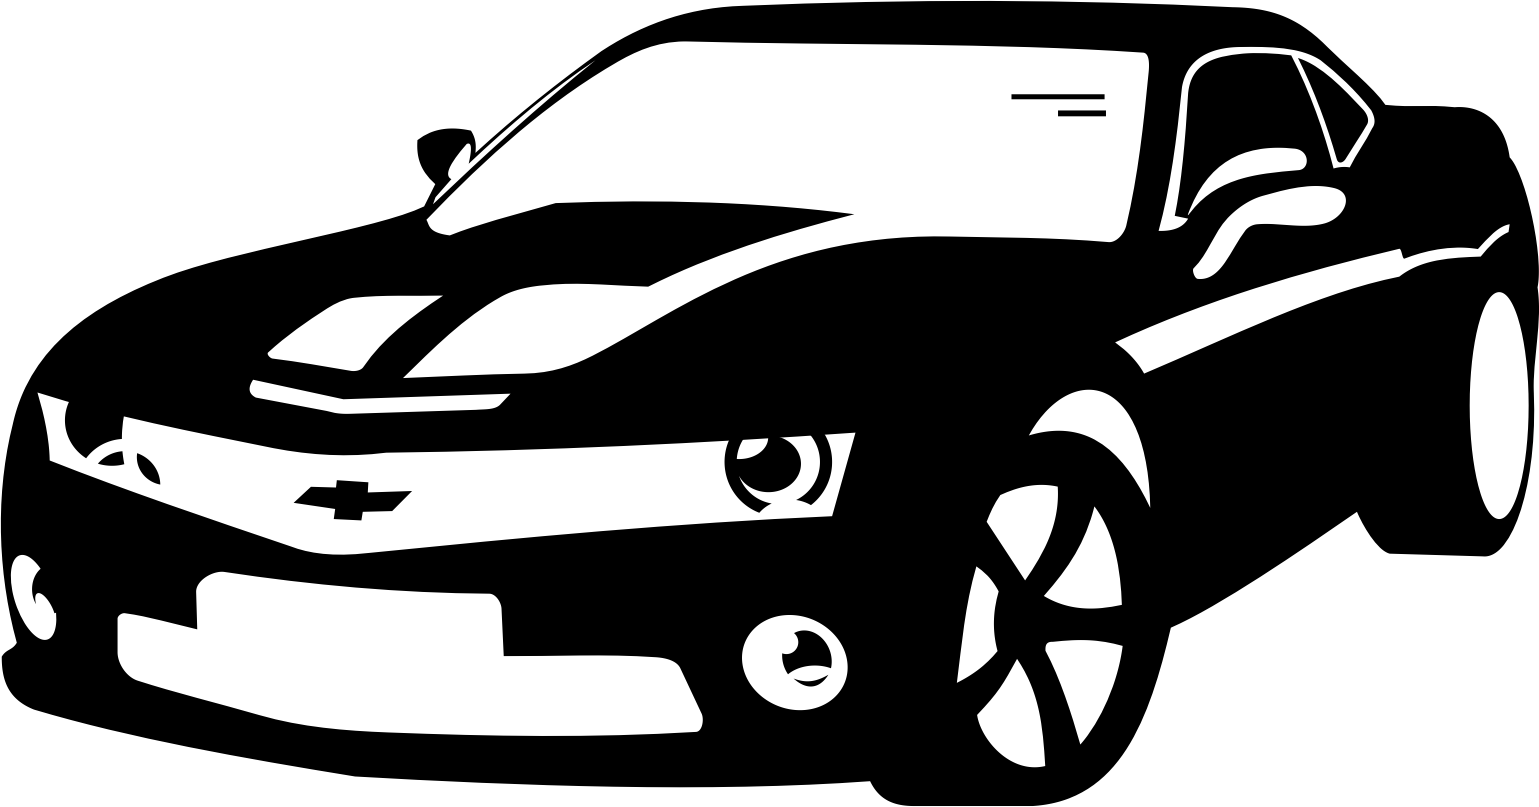 Chevy clipart graphic freeuse stock Clipart chevrolet camaro - Clip Art Library graphic freeuse stock